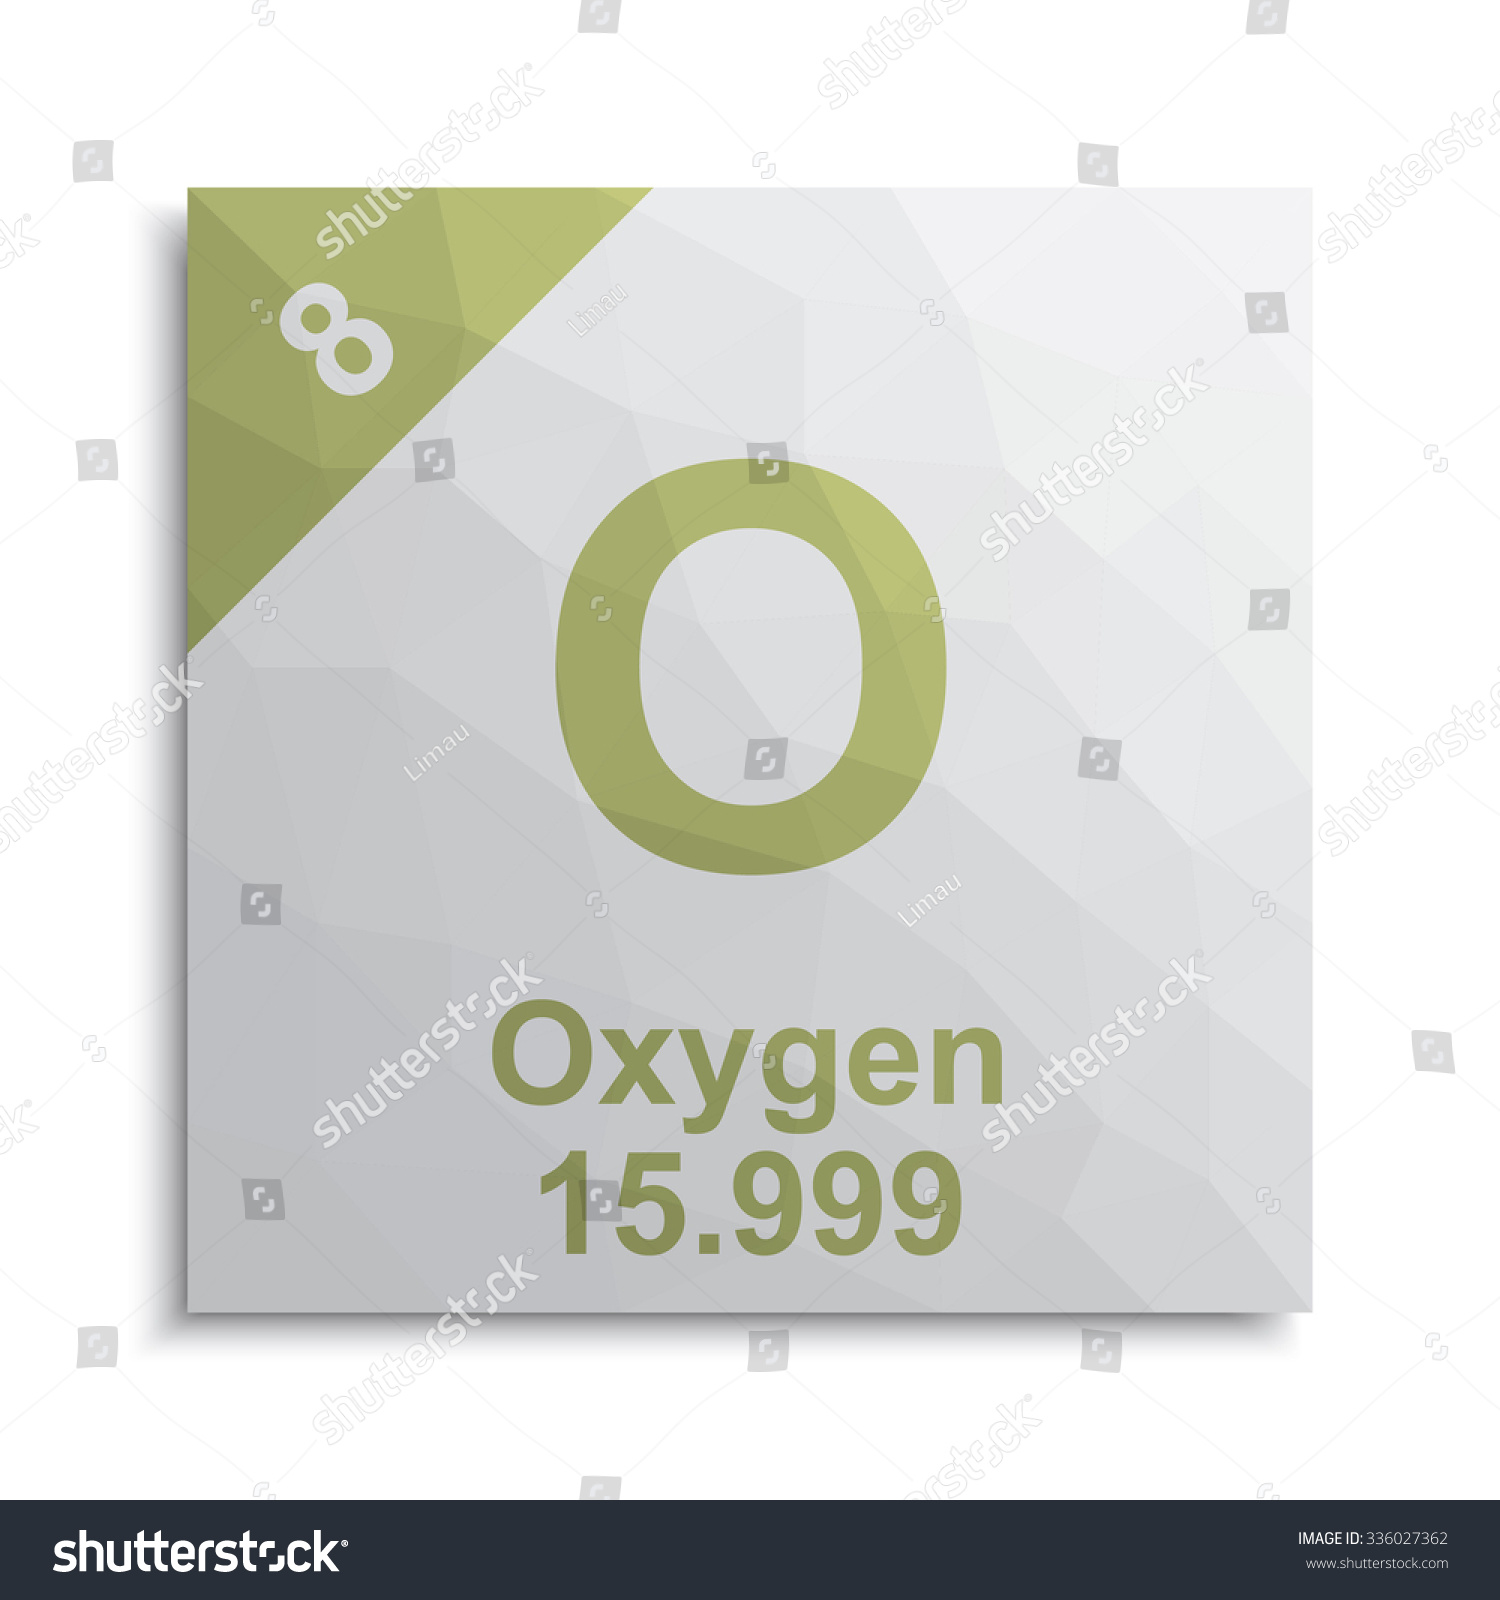 essays on the element oxygen Magnesium oxide chemistry report essay magnesium is reacted with oxygen from air in a contained crucible, and the masses before and after the oxidation is measured magnesium oxide was the product of two reactive elements magnesium and oxygen.